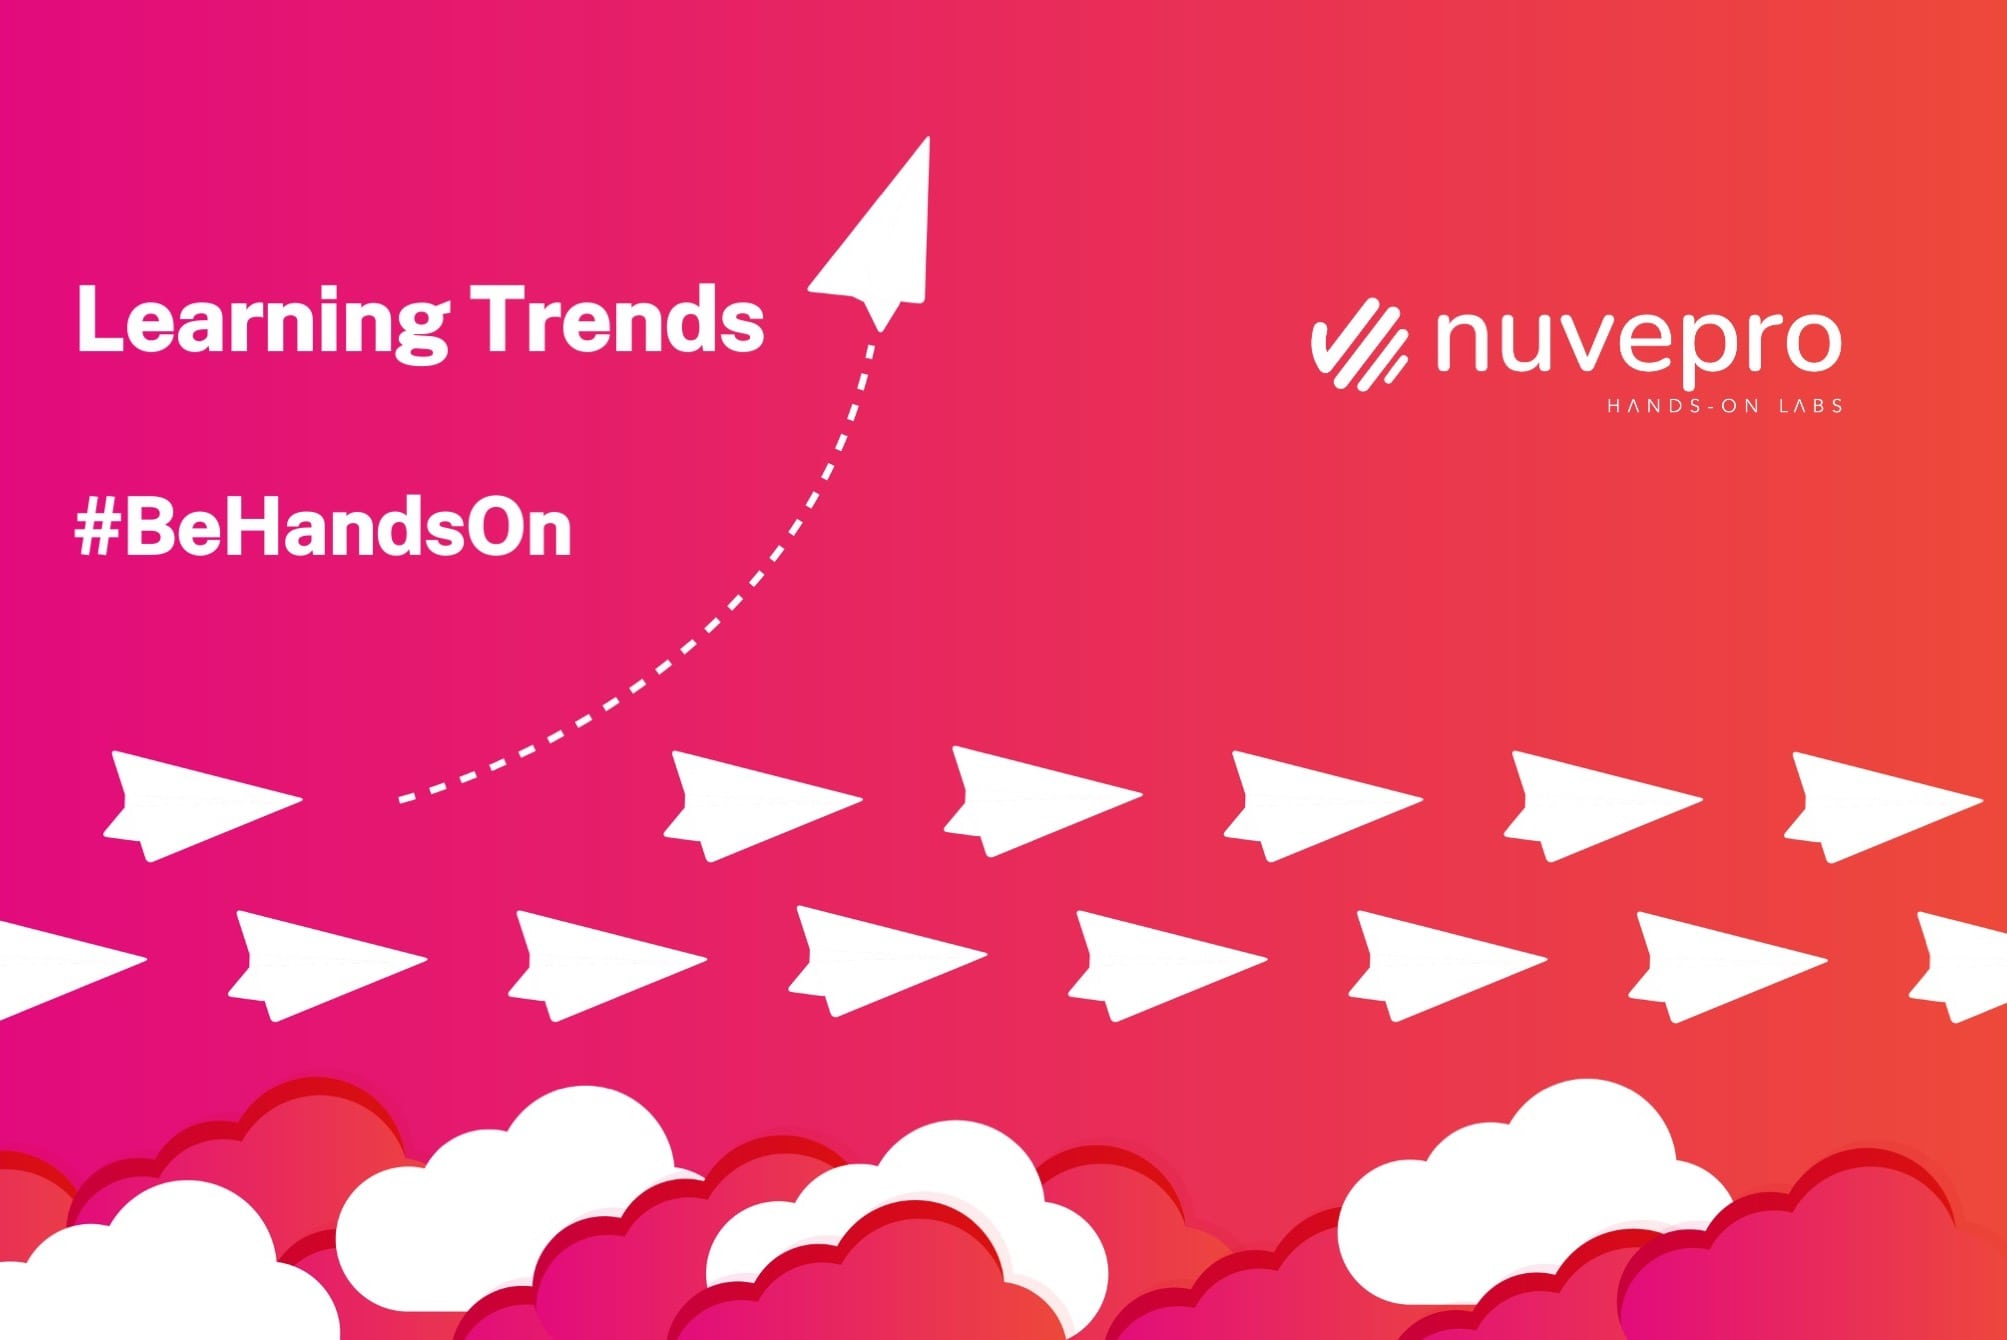 Nuvepro Learning Trends